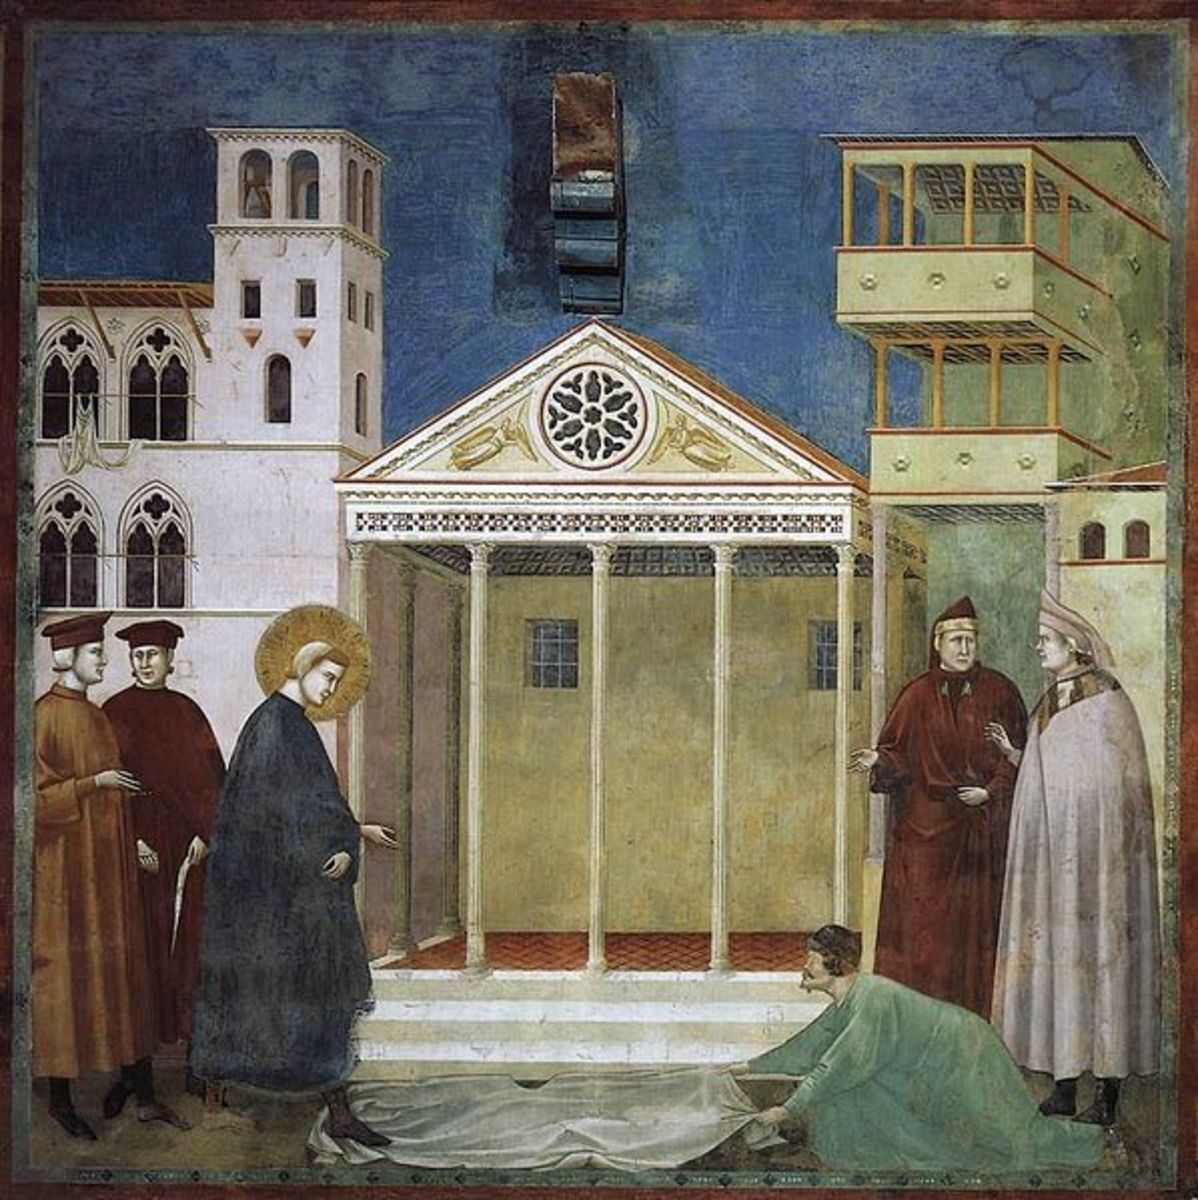 Giotto di Bondone, Homage of a Simple Man (a. 1299), Assisi Upper Church